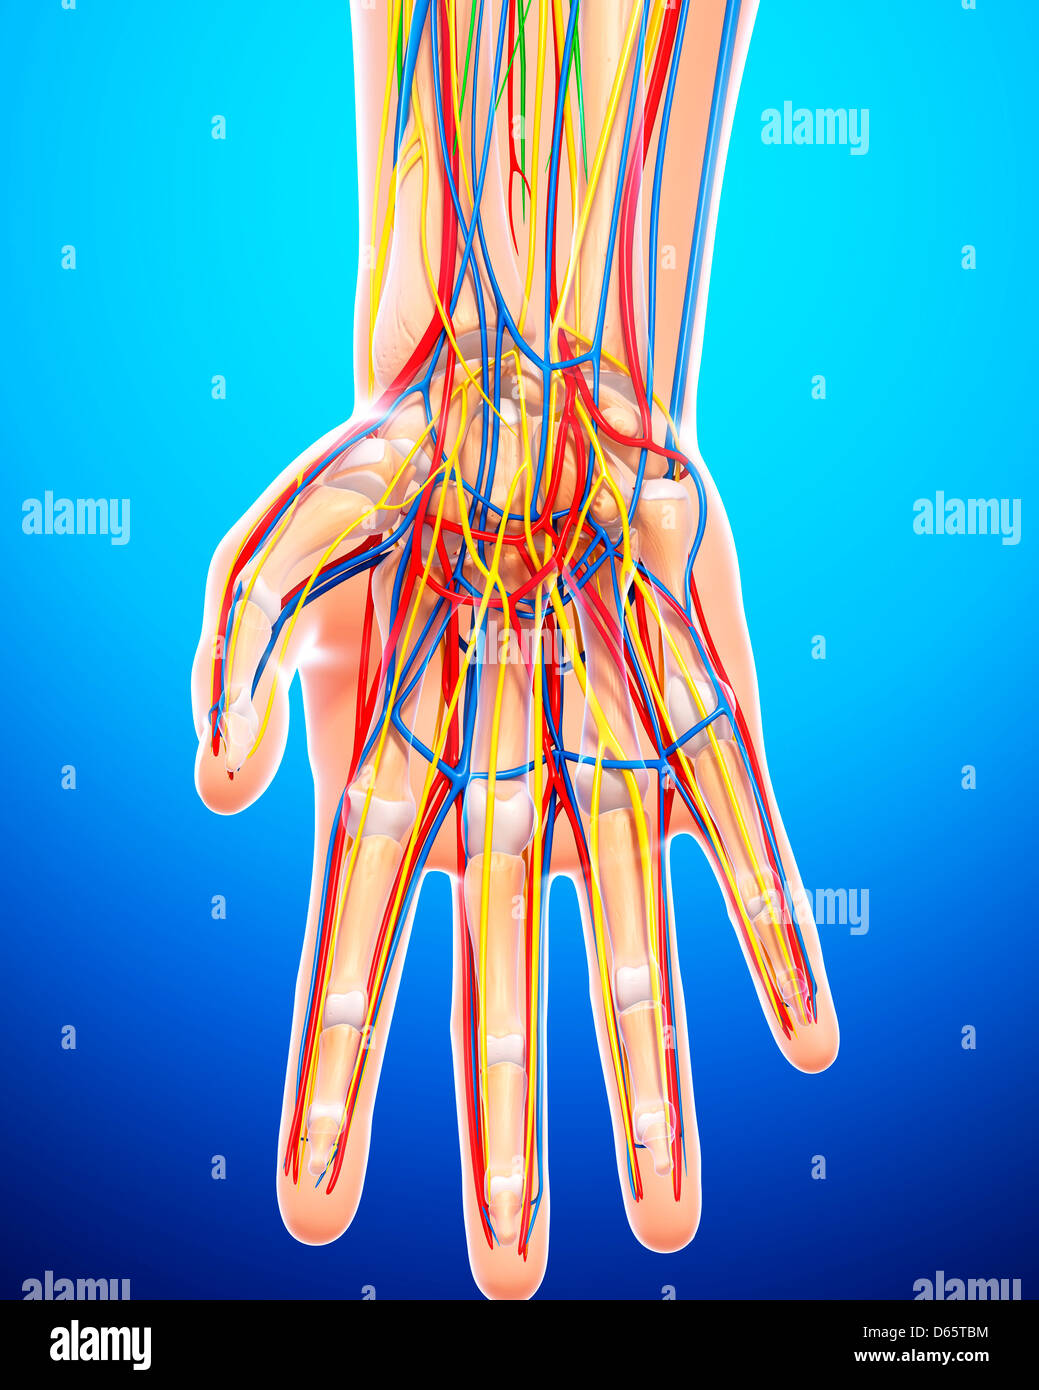 Back Of Hand Vein Stock Photos & Back Of Hand Vein Stock Images - Alamy